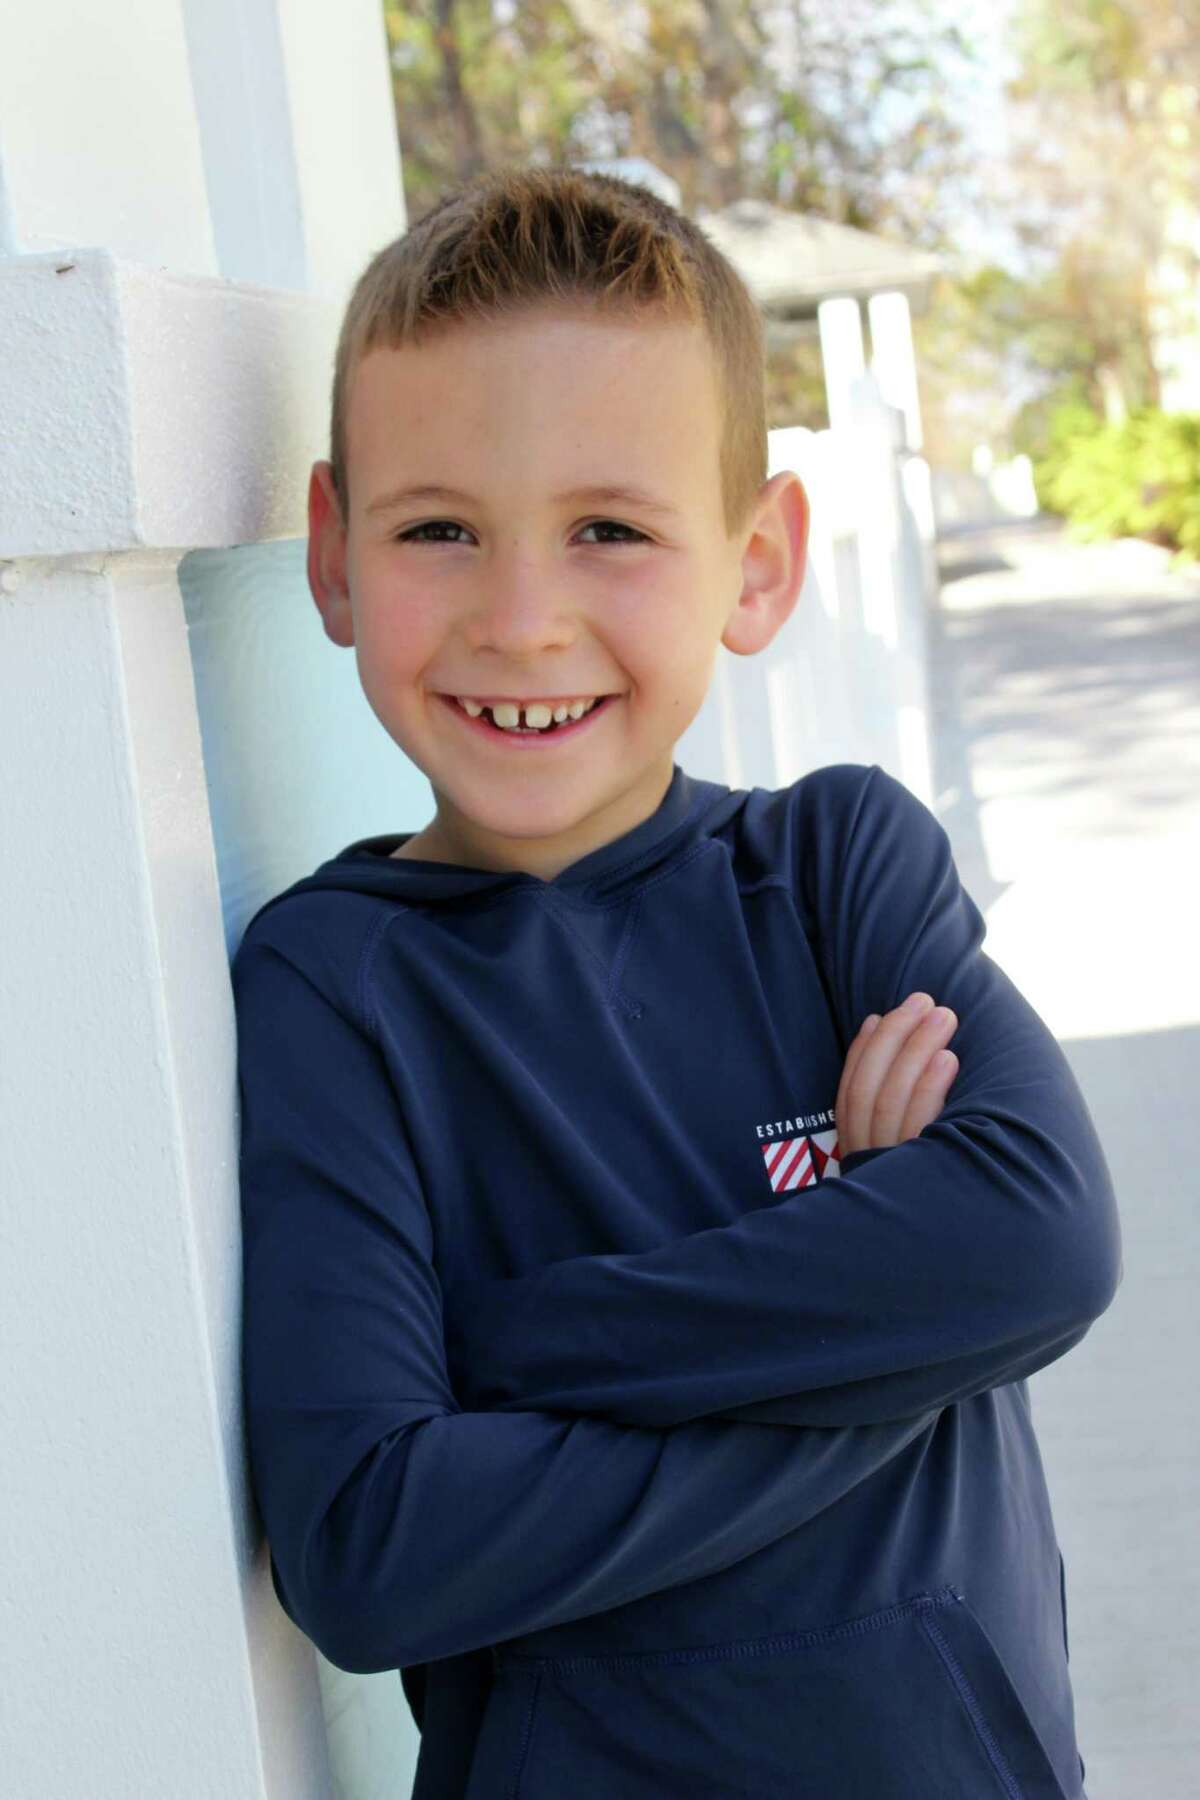 A bill known as Tristan's Law, named after the late Tristan Barhorst, would institute new safety requirements for ice cream trucks. Tristan, 10, of Wallingford, was struck and killed by a car after buying ice cream from an ice cream truck in Cheshire, Conn., on June 12, 2020. Tristan is seen here in 2017 during a family trip to Orlando, Fla.